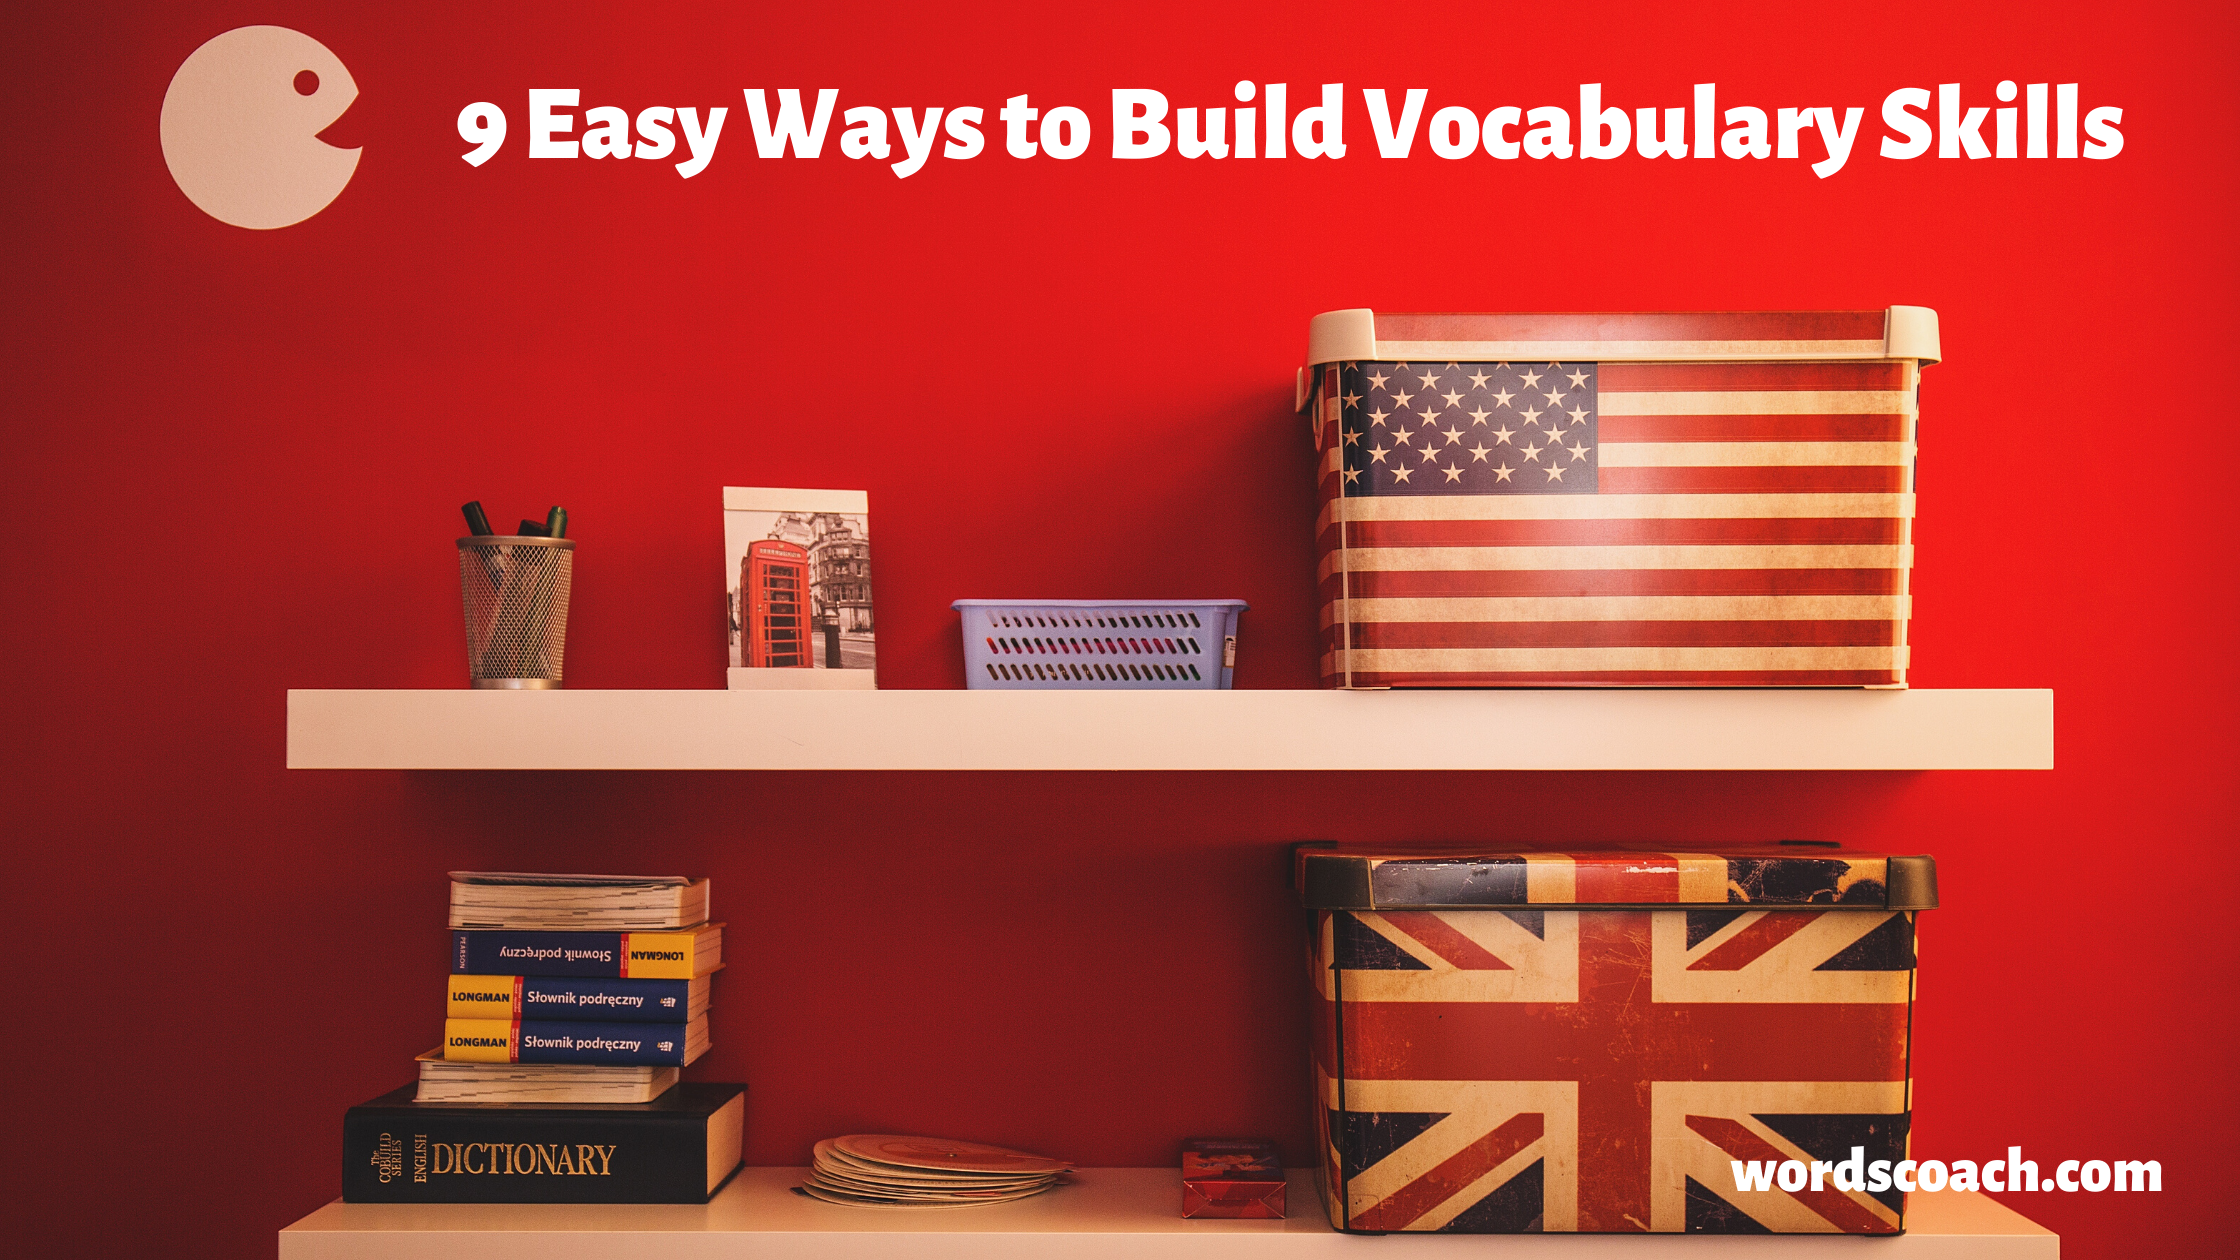 Build your Vocabulary Skills in just 9 Easy Ways